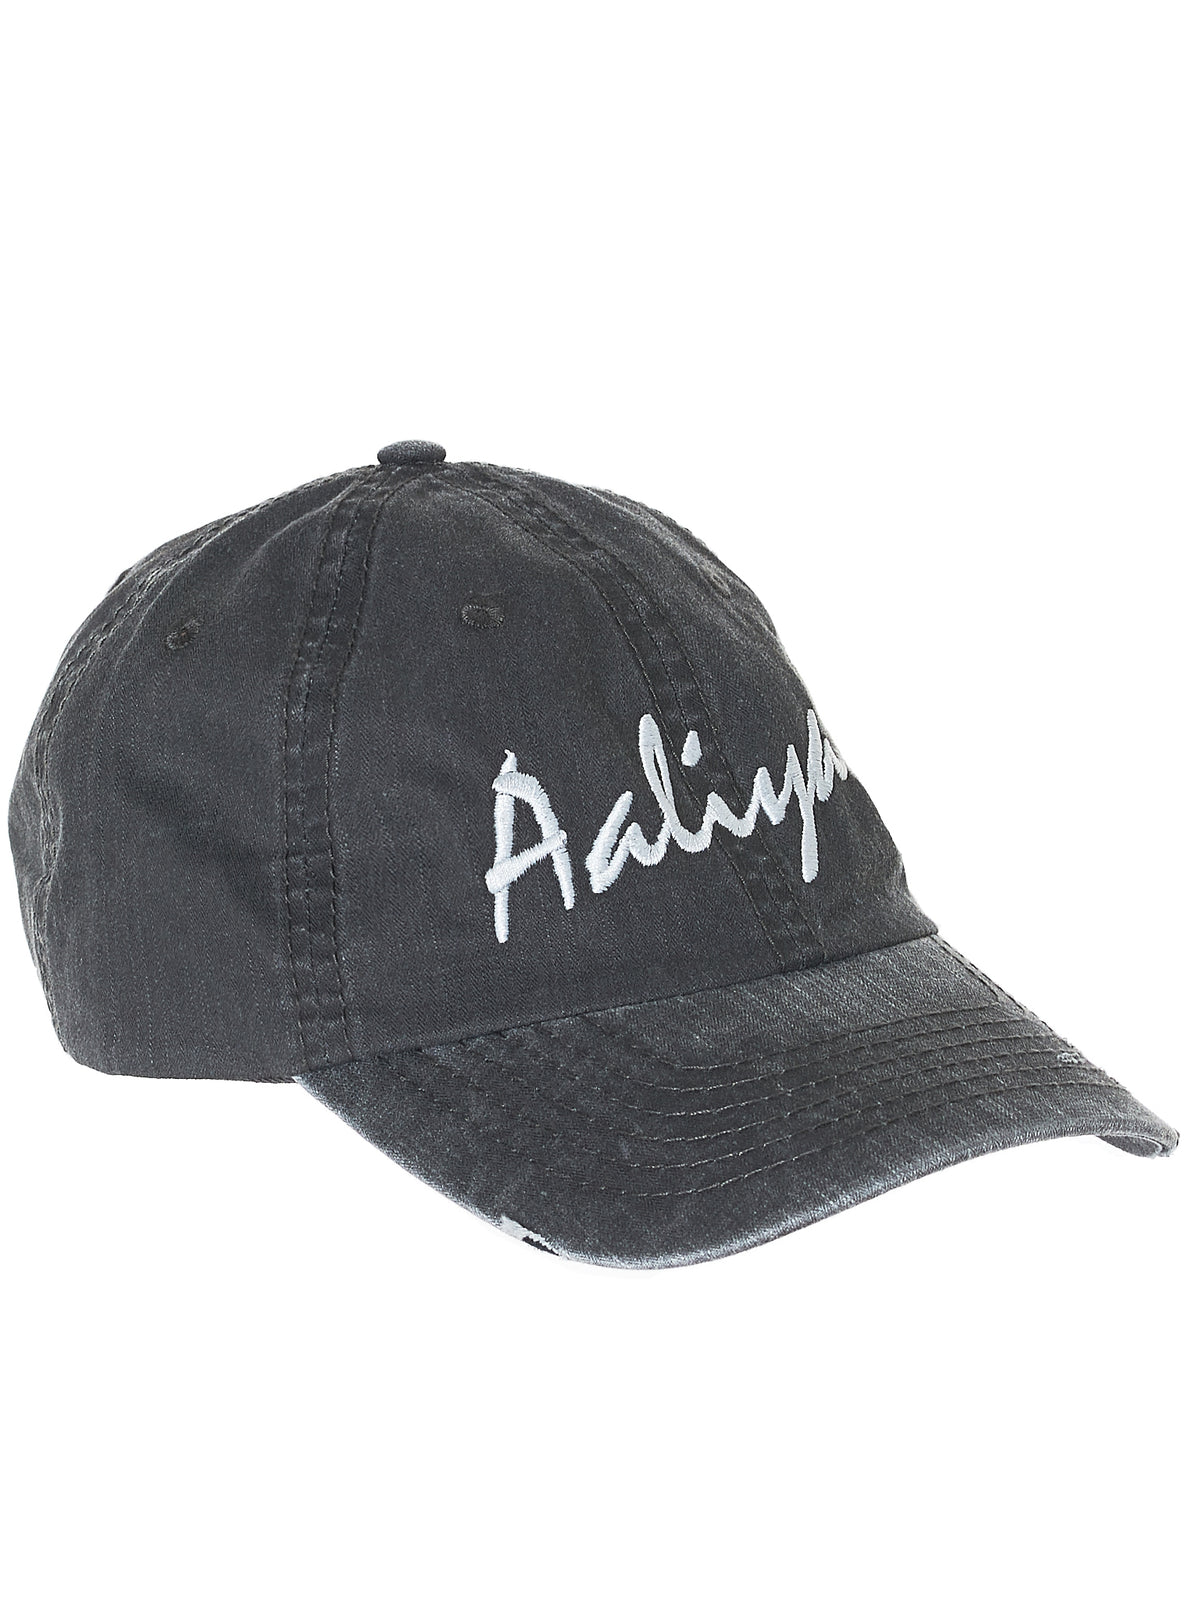 Lights Out Baseball Cap (LIGHTS-OUT-AALIYAH-CHARCOAL)